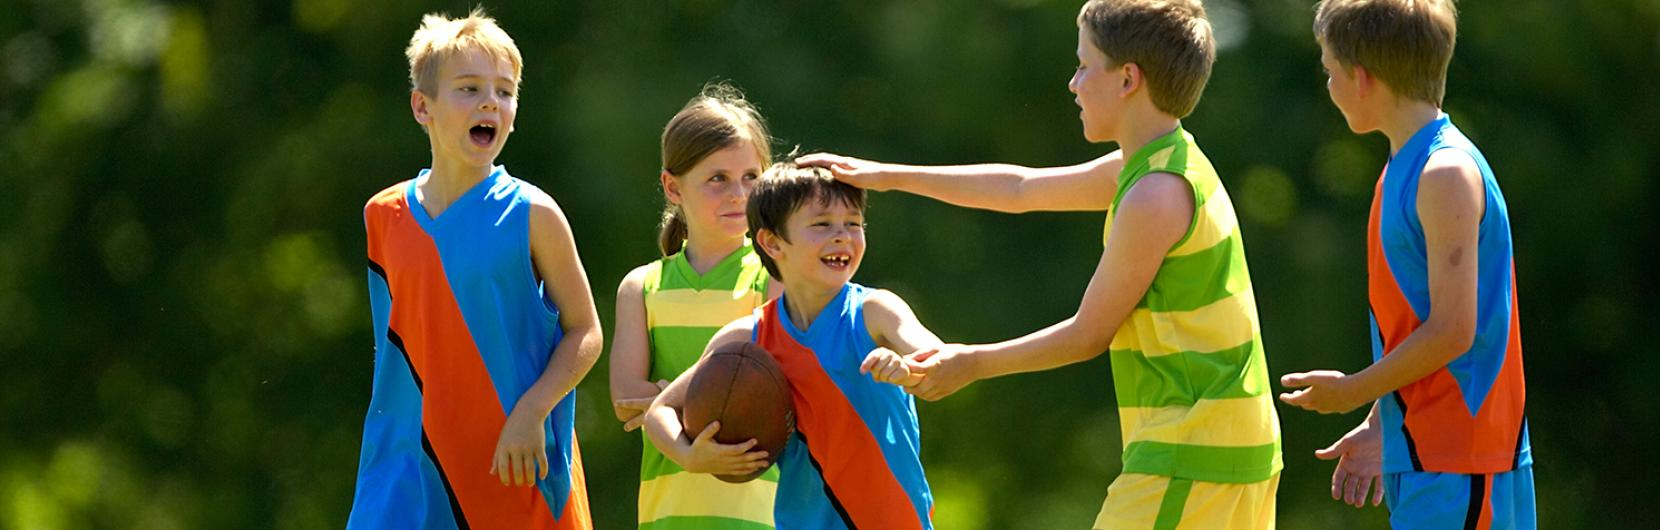 WHY IS SPORT SO IMPORTANT FOR OUR KIDS?